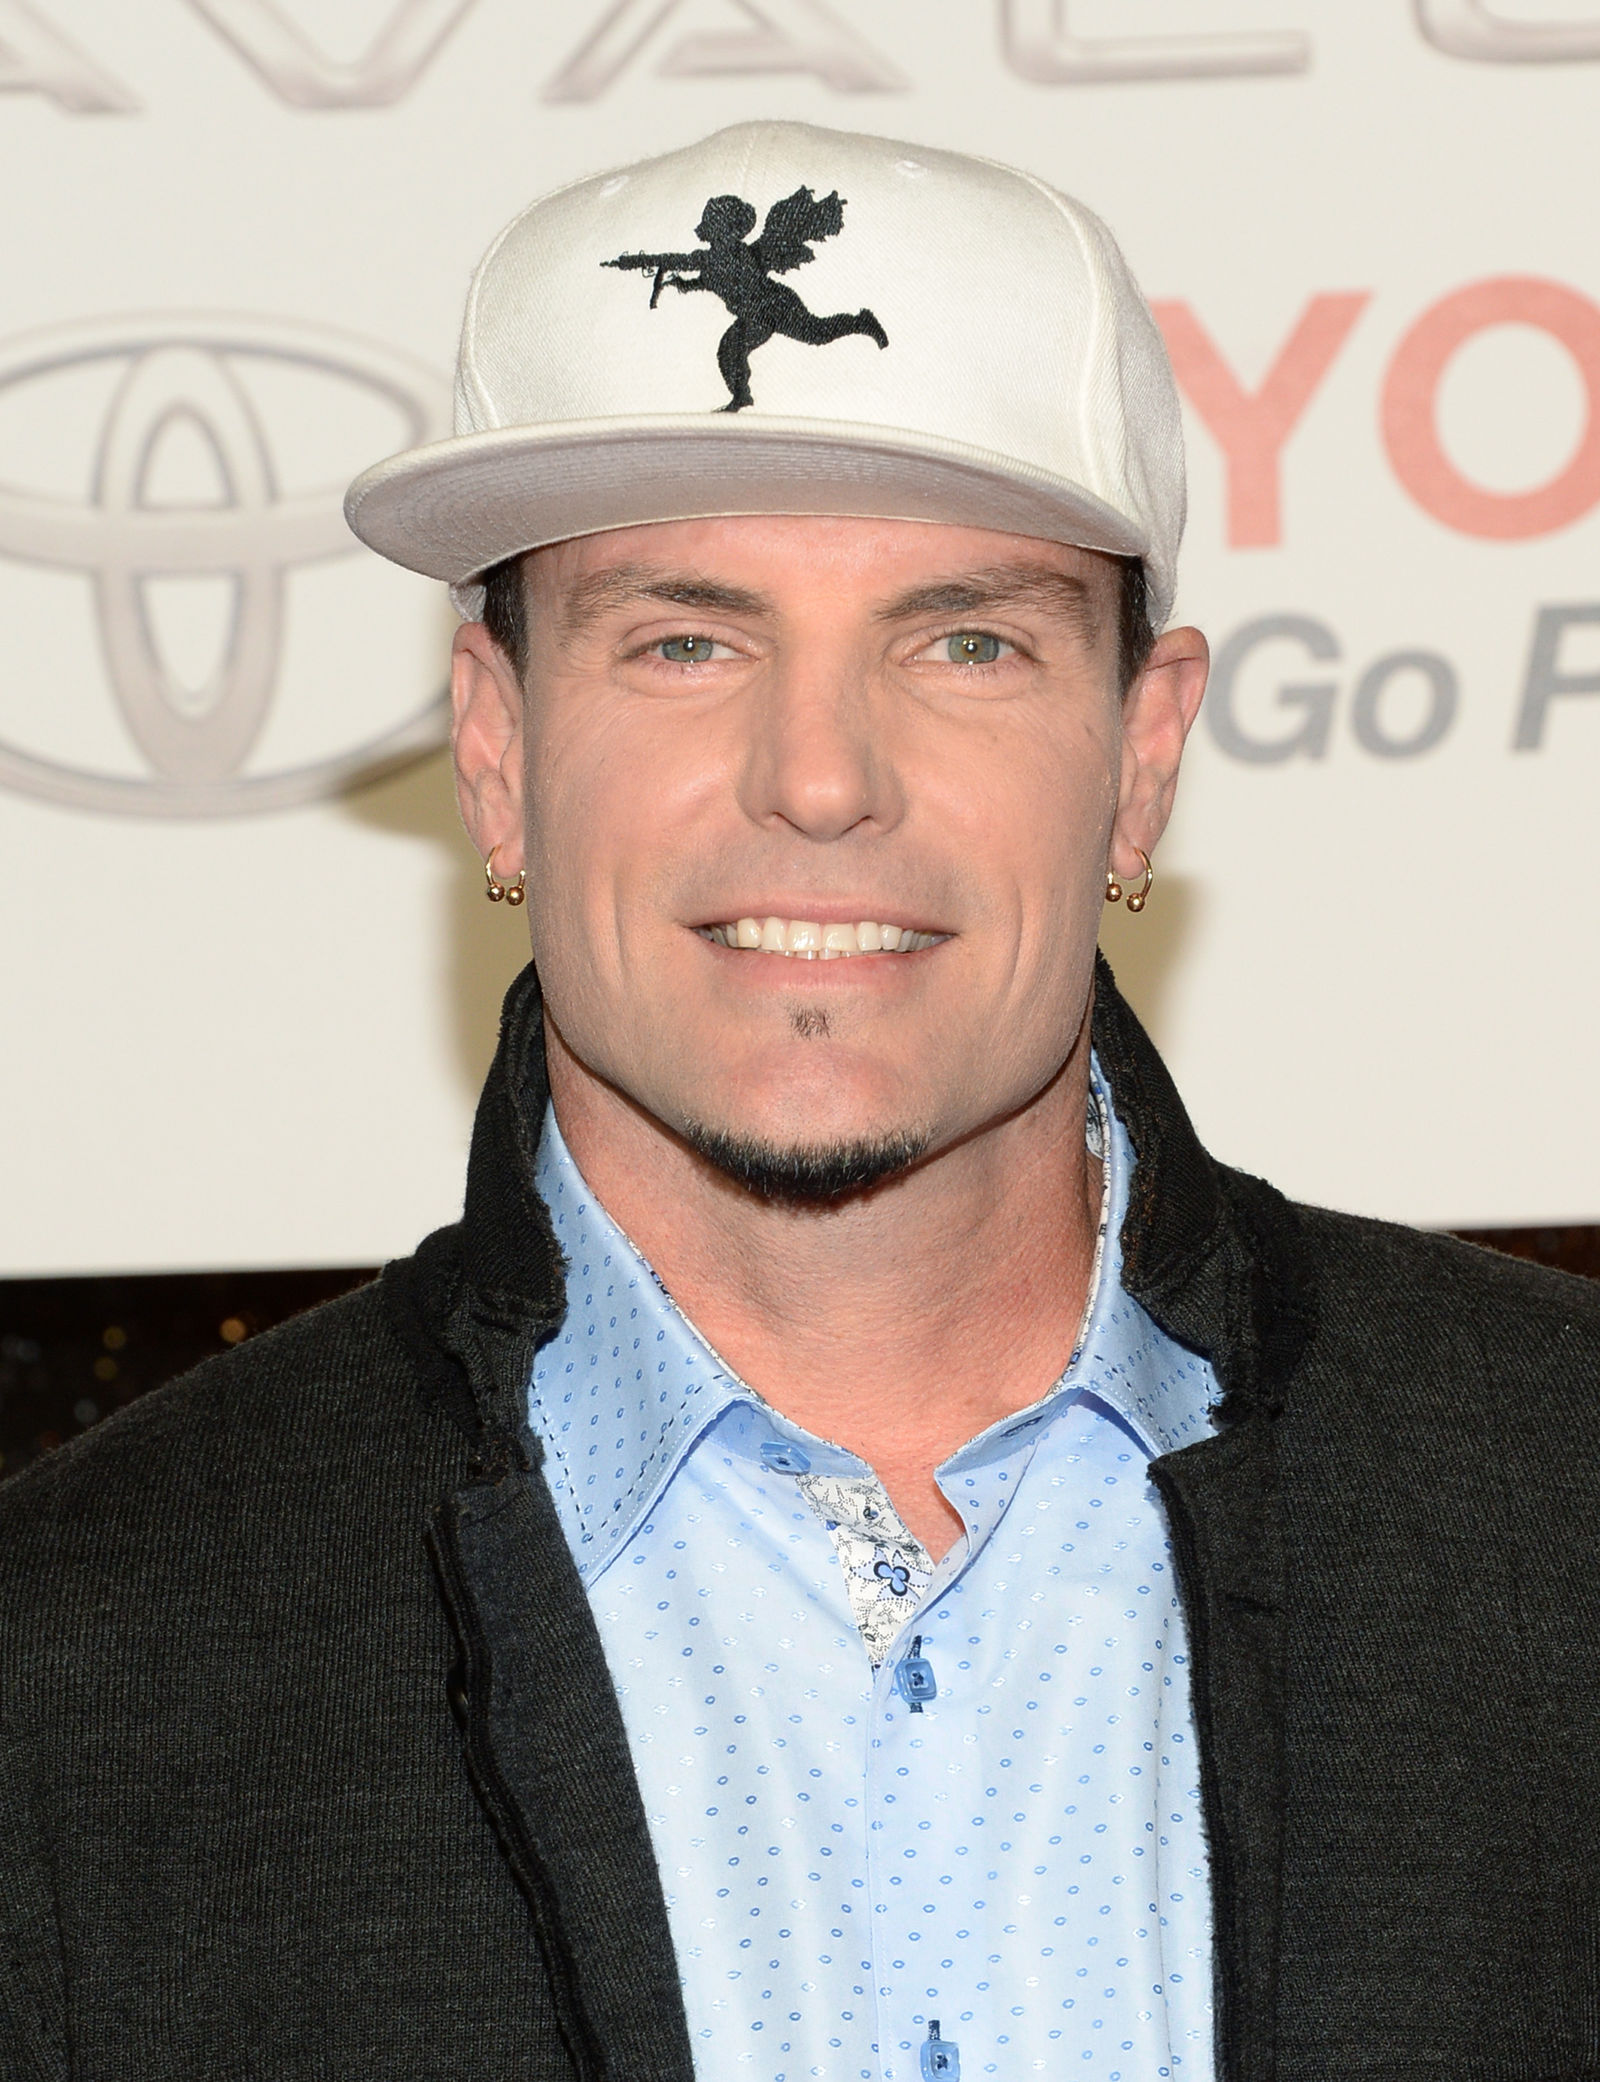 Recording Artist Vanilla Ice attends the Soul Train Awards 2013 at the Orleans Arena on November 8, 2013 in Las Vegas, Nevada.  (Photo by Jason Kempin/Getty Images for BET)